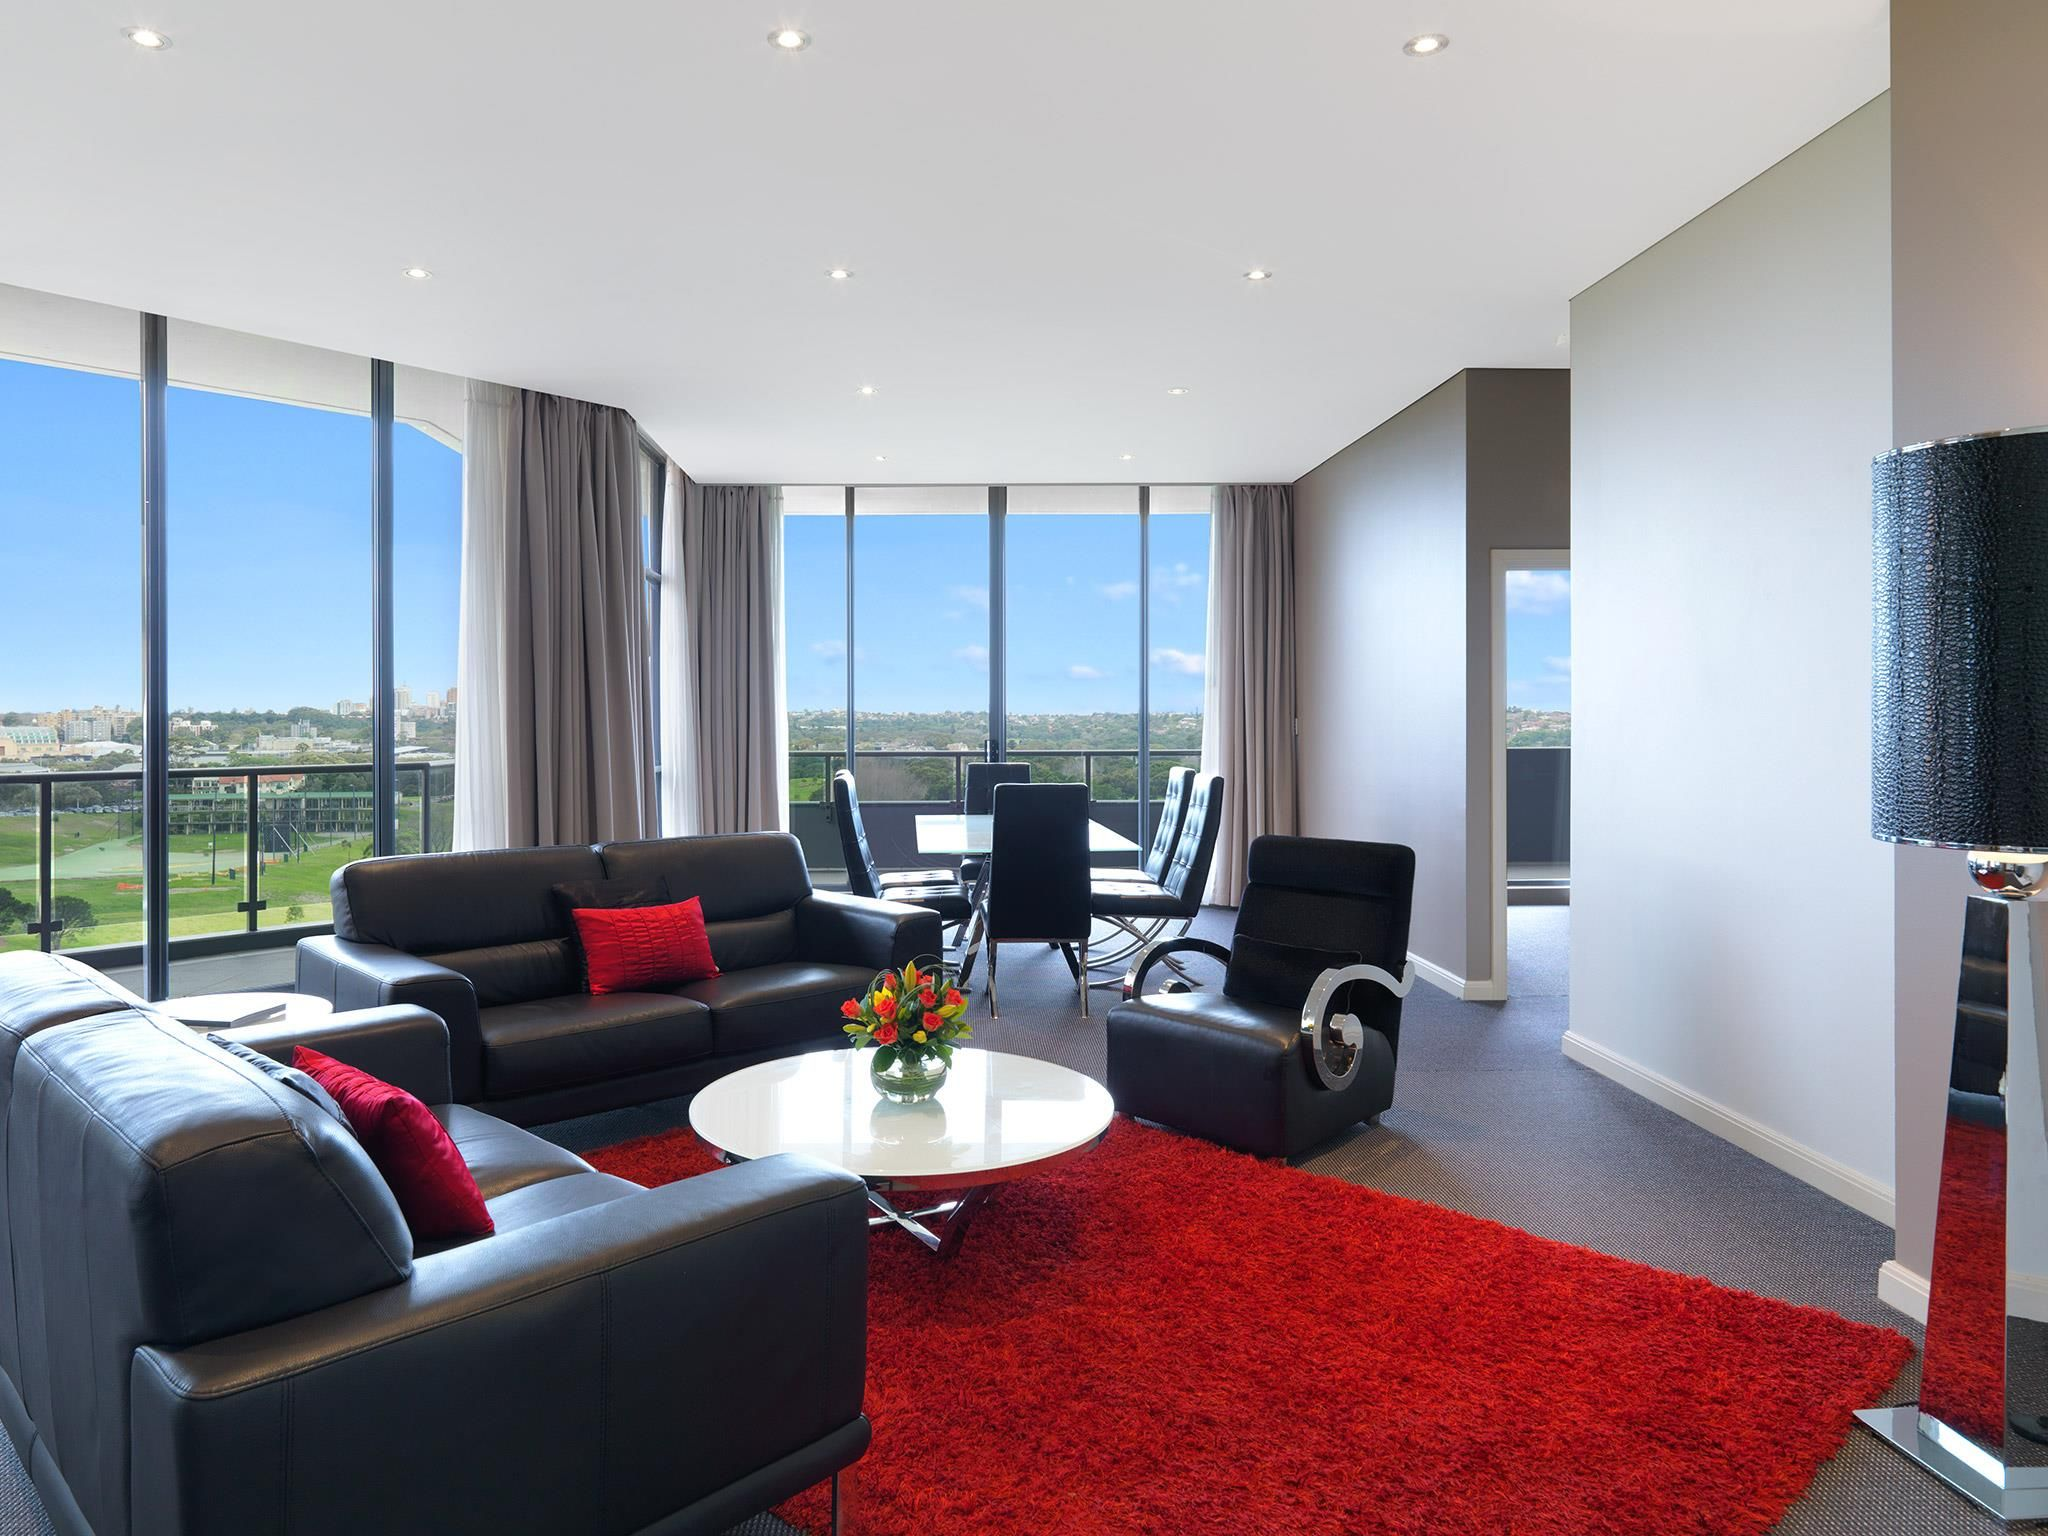 sydney meriton serviced apartments waterloo australia, pacific